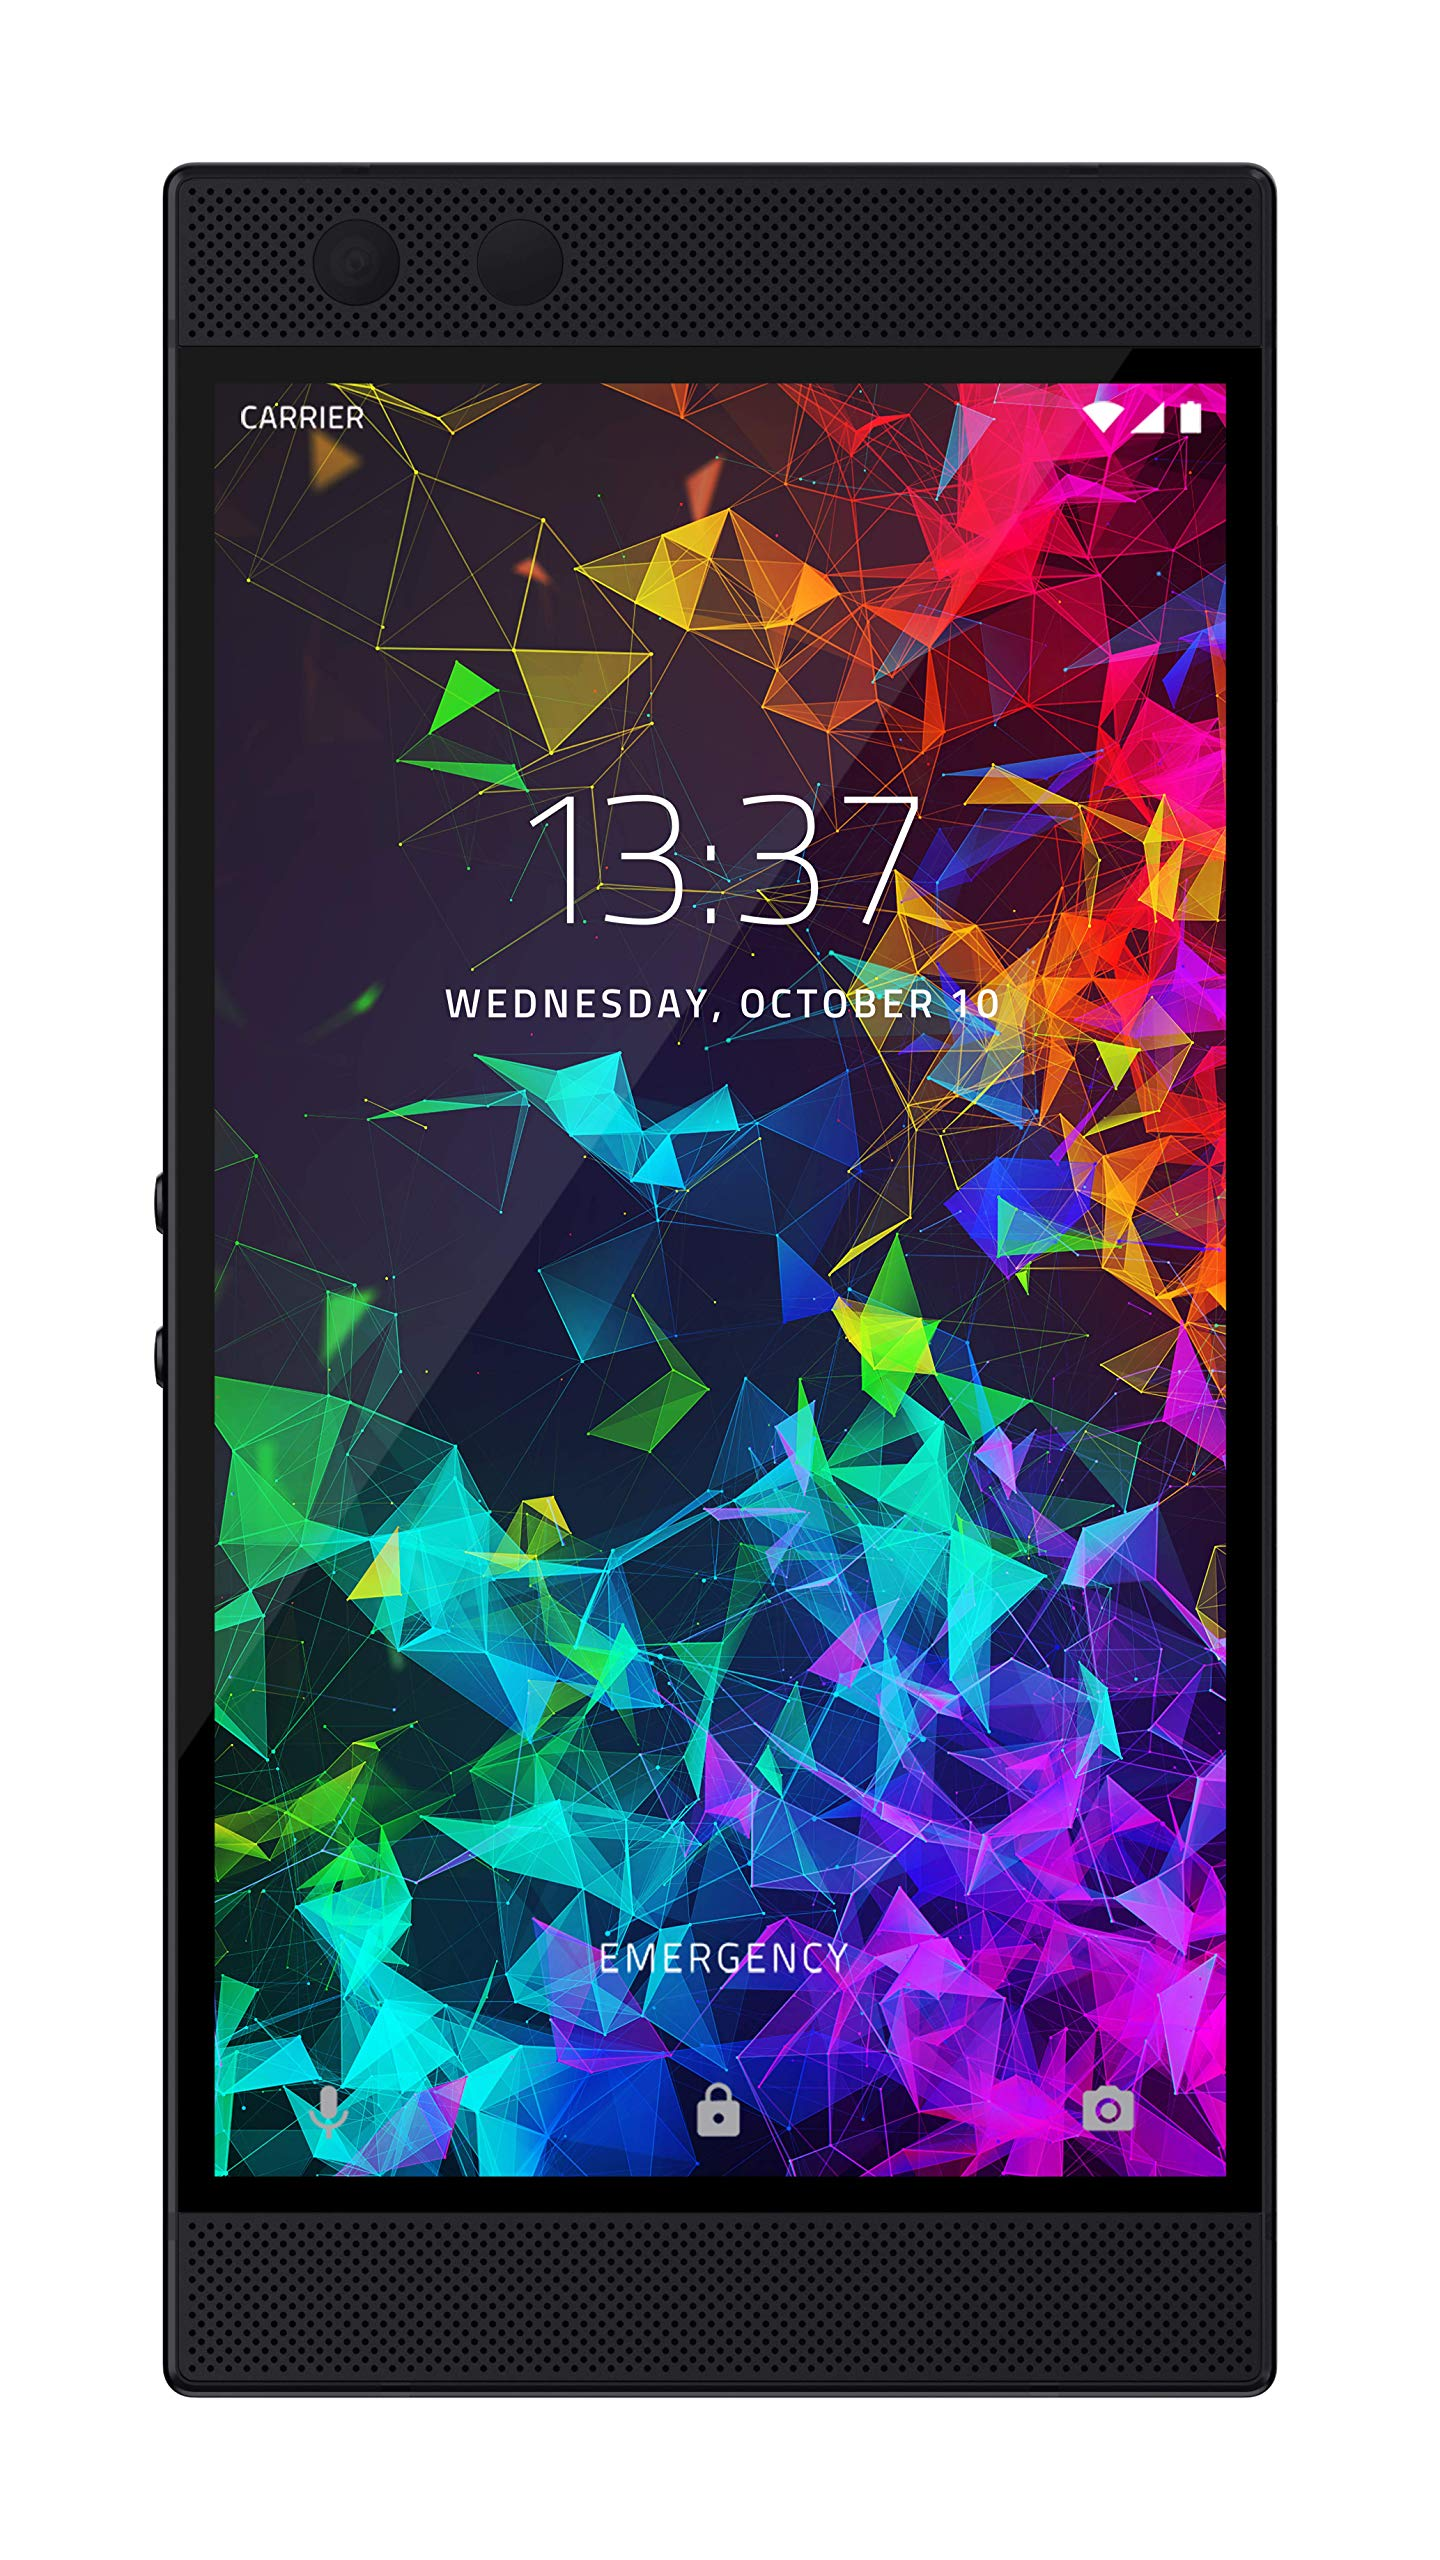 Razer Phone 2 (New): Unlocked Gaming Smartphone - 120Hz QHD Display - Snapdragon 845 - Wireless Charging - Chroma - 8GB RAM - 64GB - Mirror Black Finish by Razer